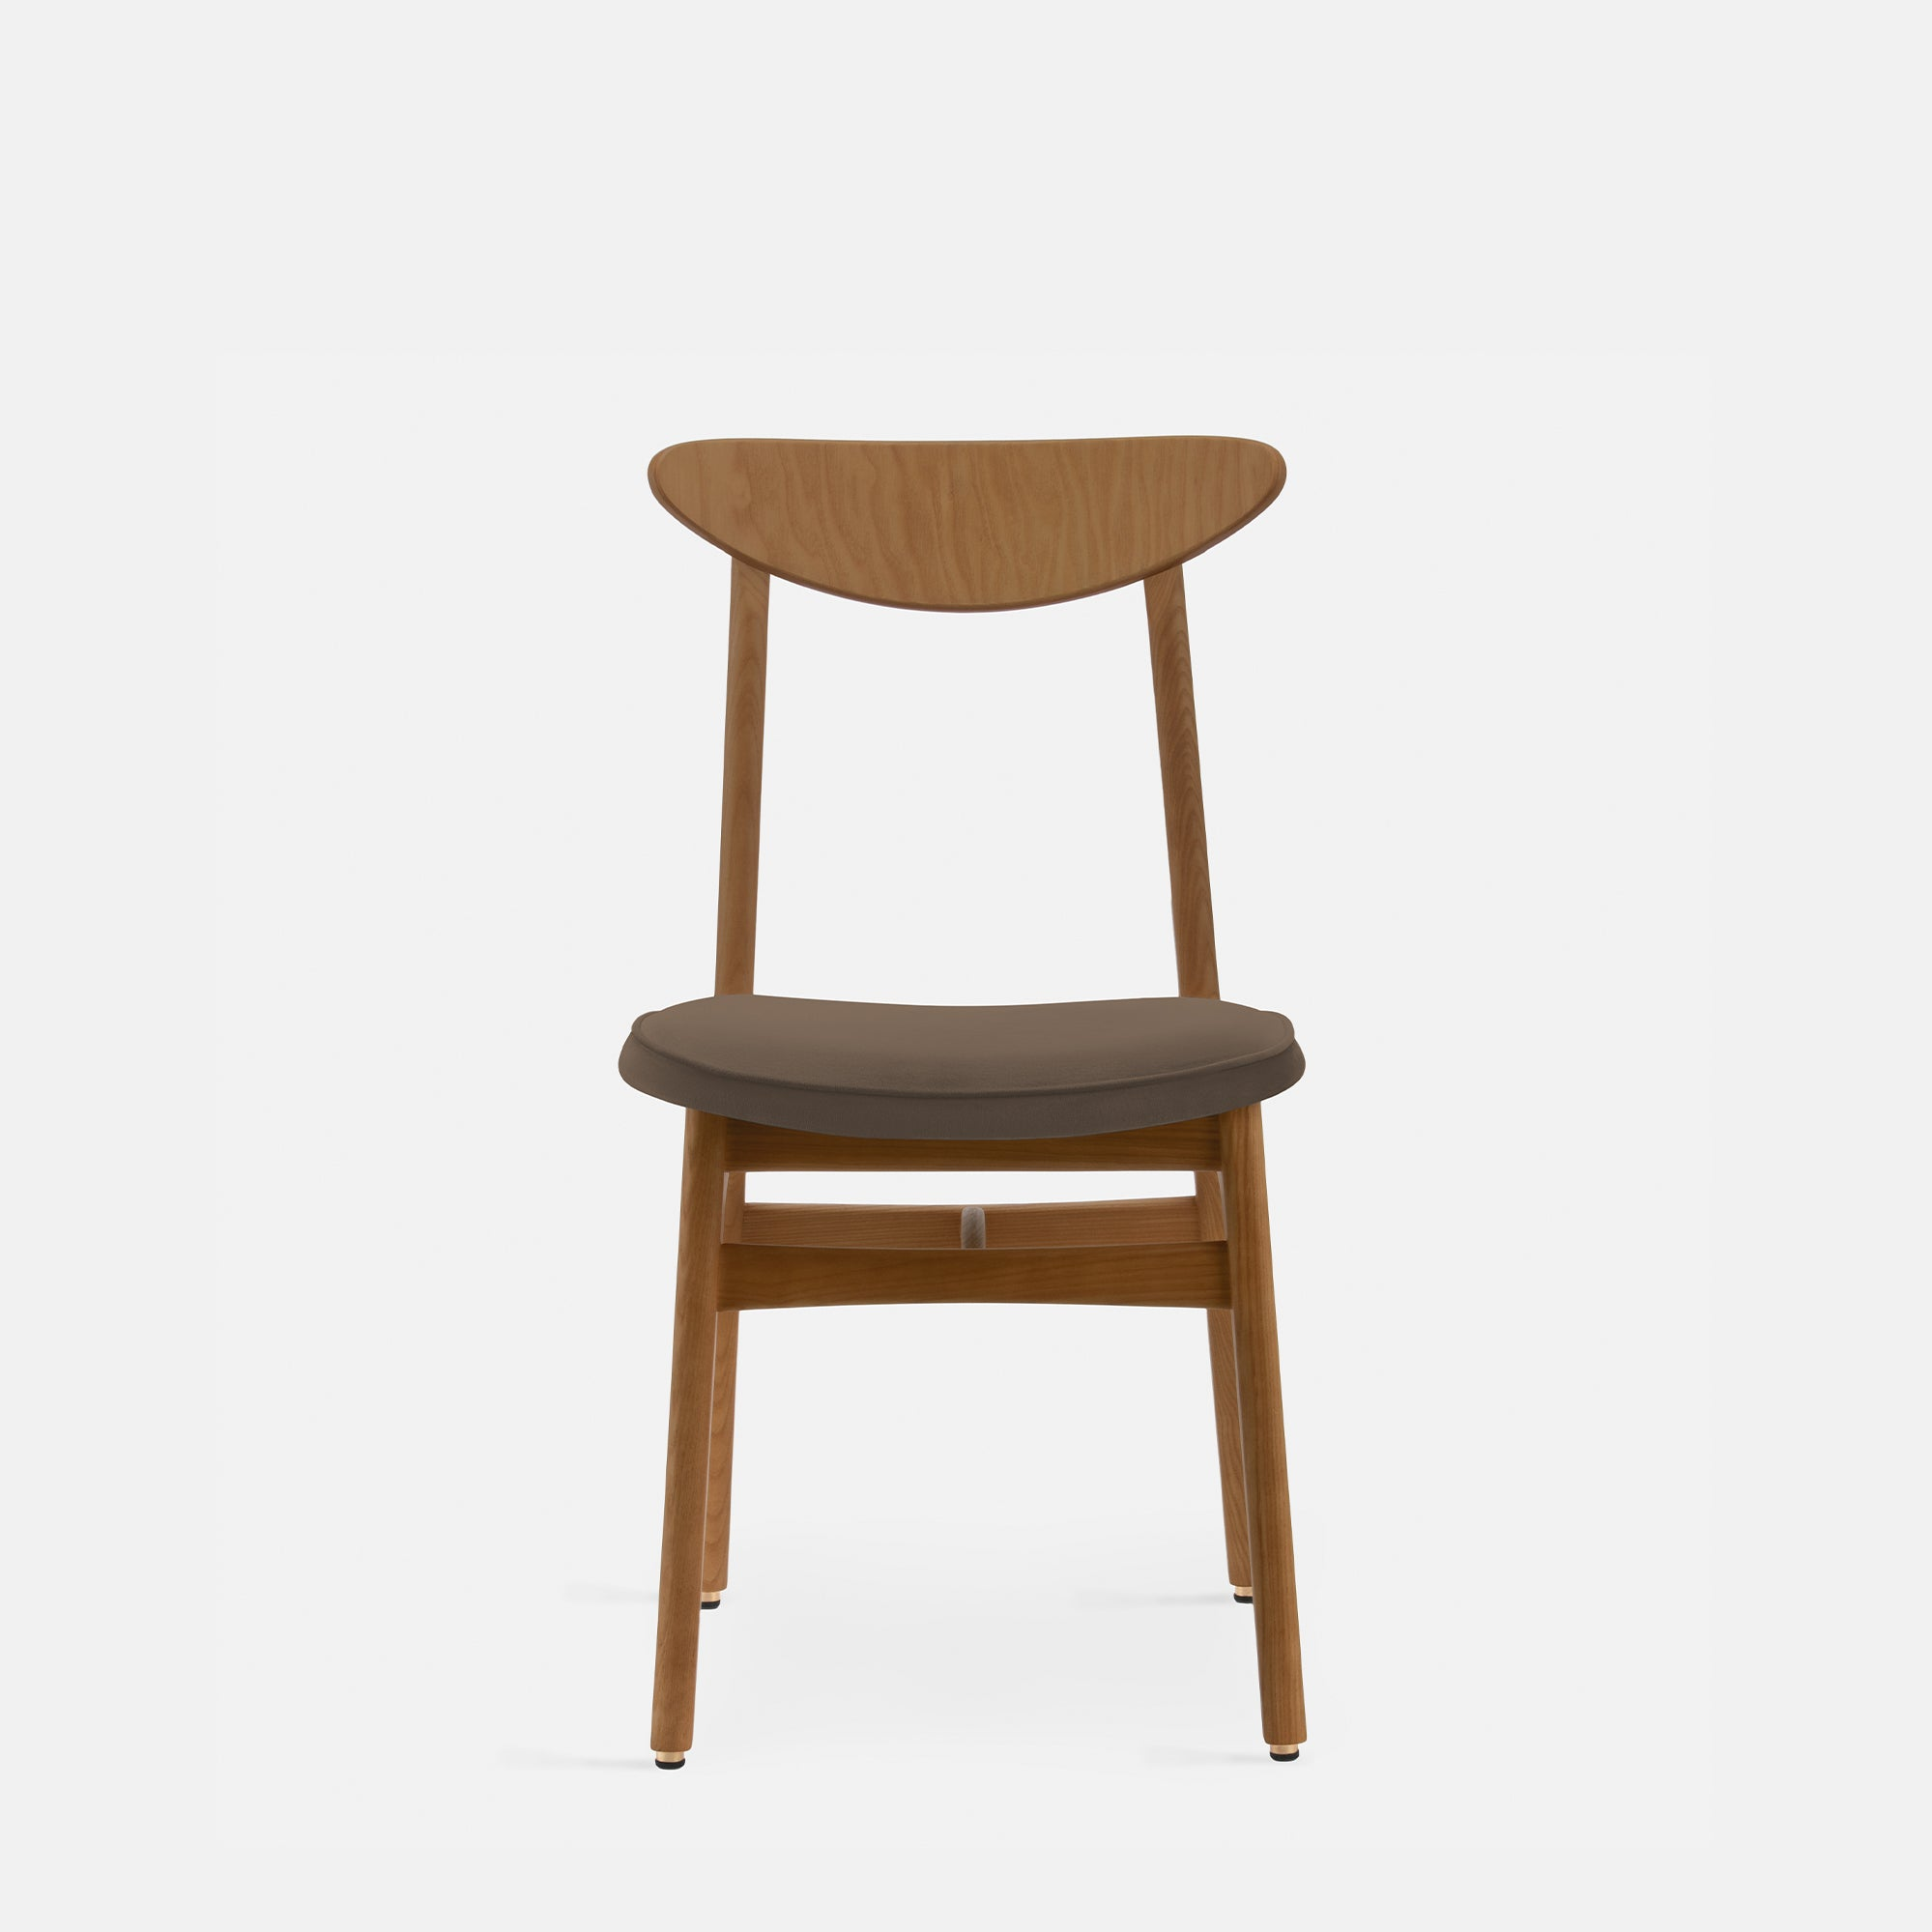 200-190 Dining Mix Chair - Mid Century Design